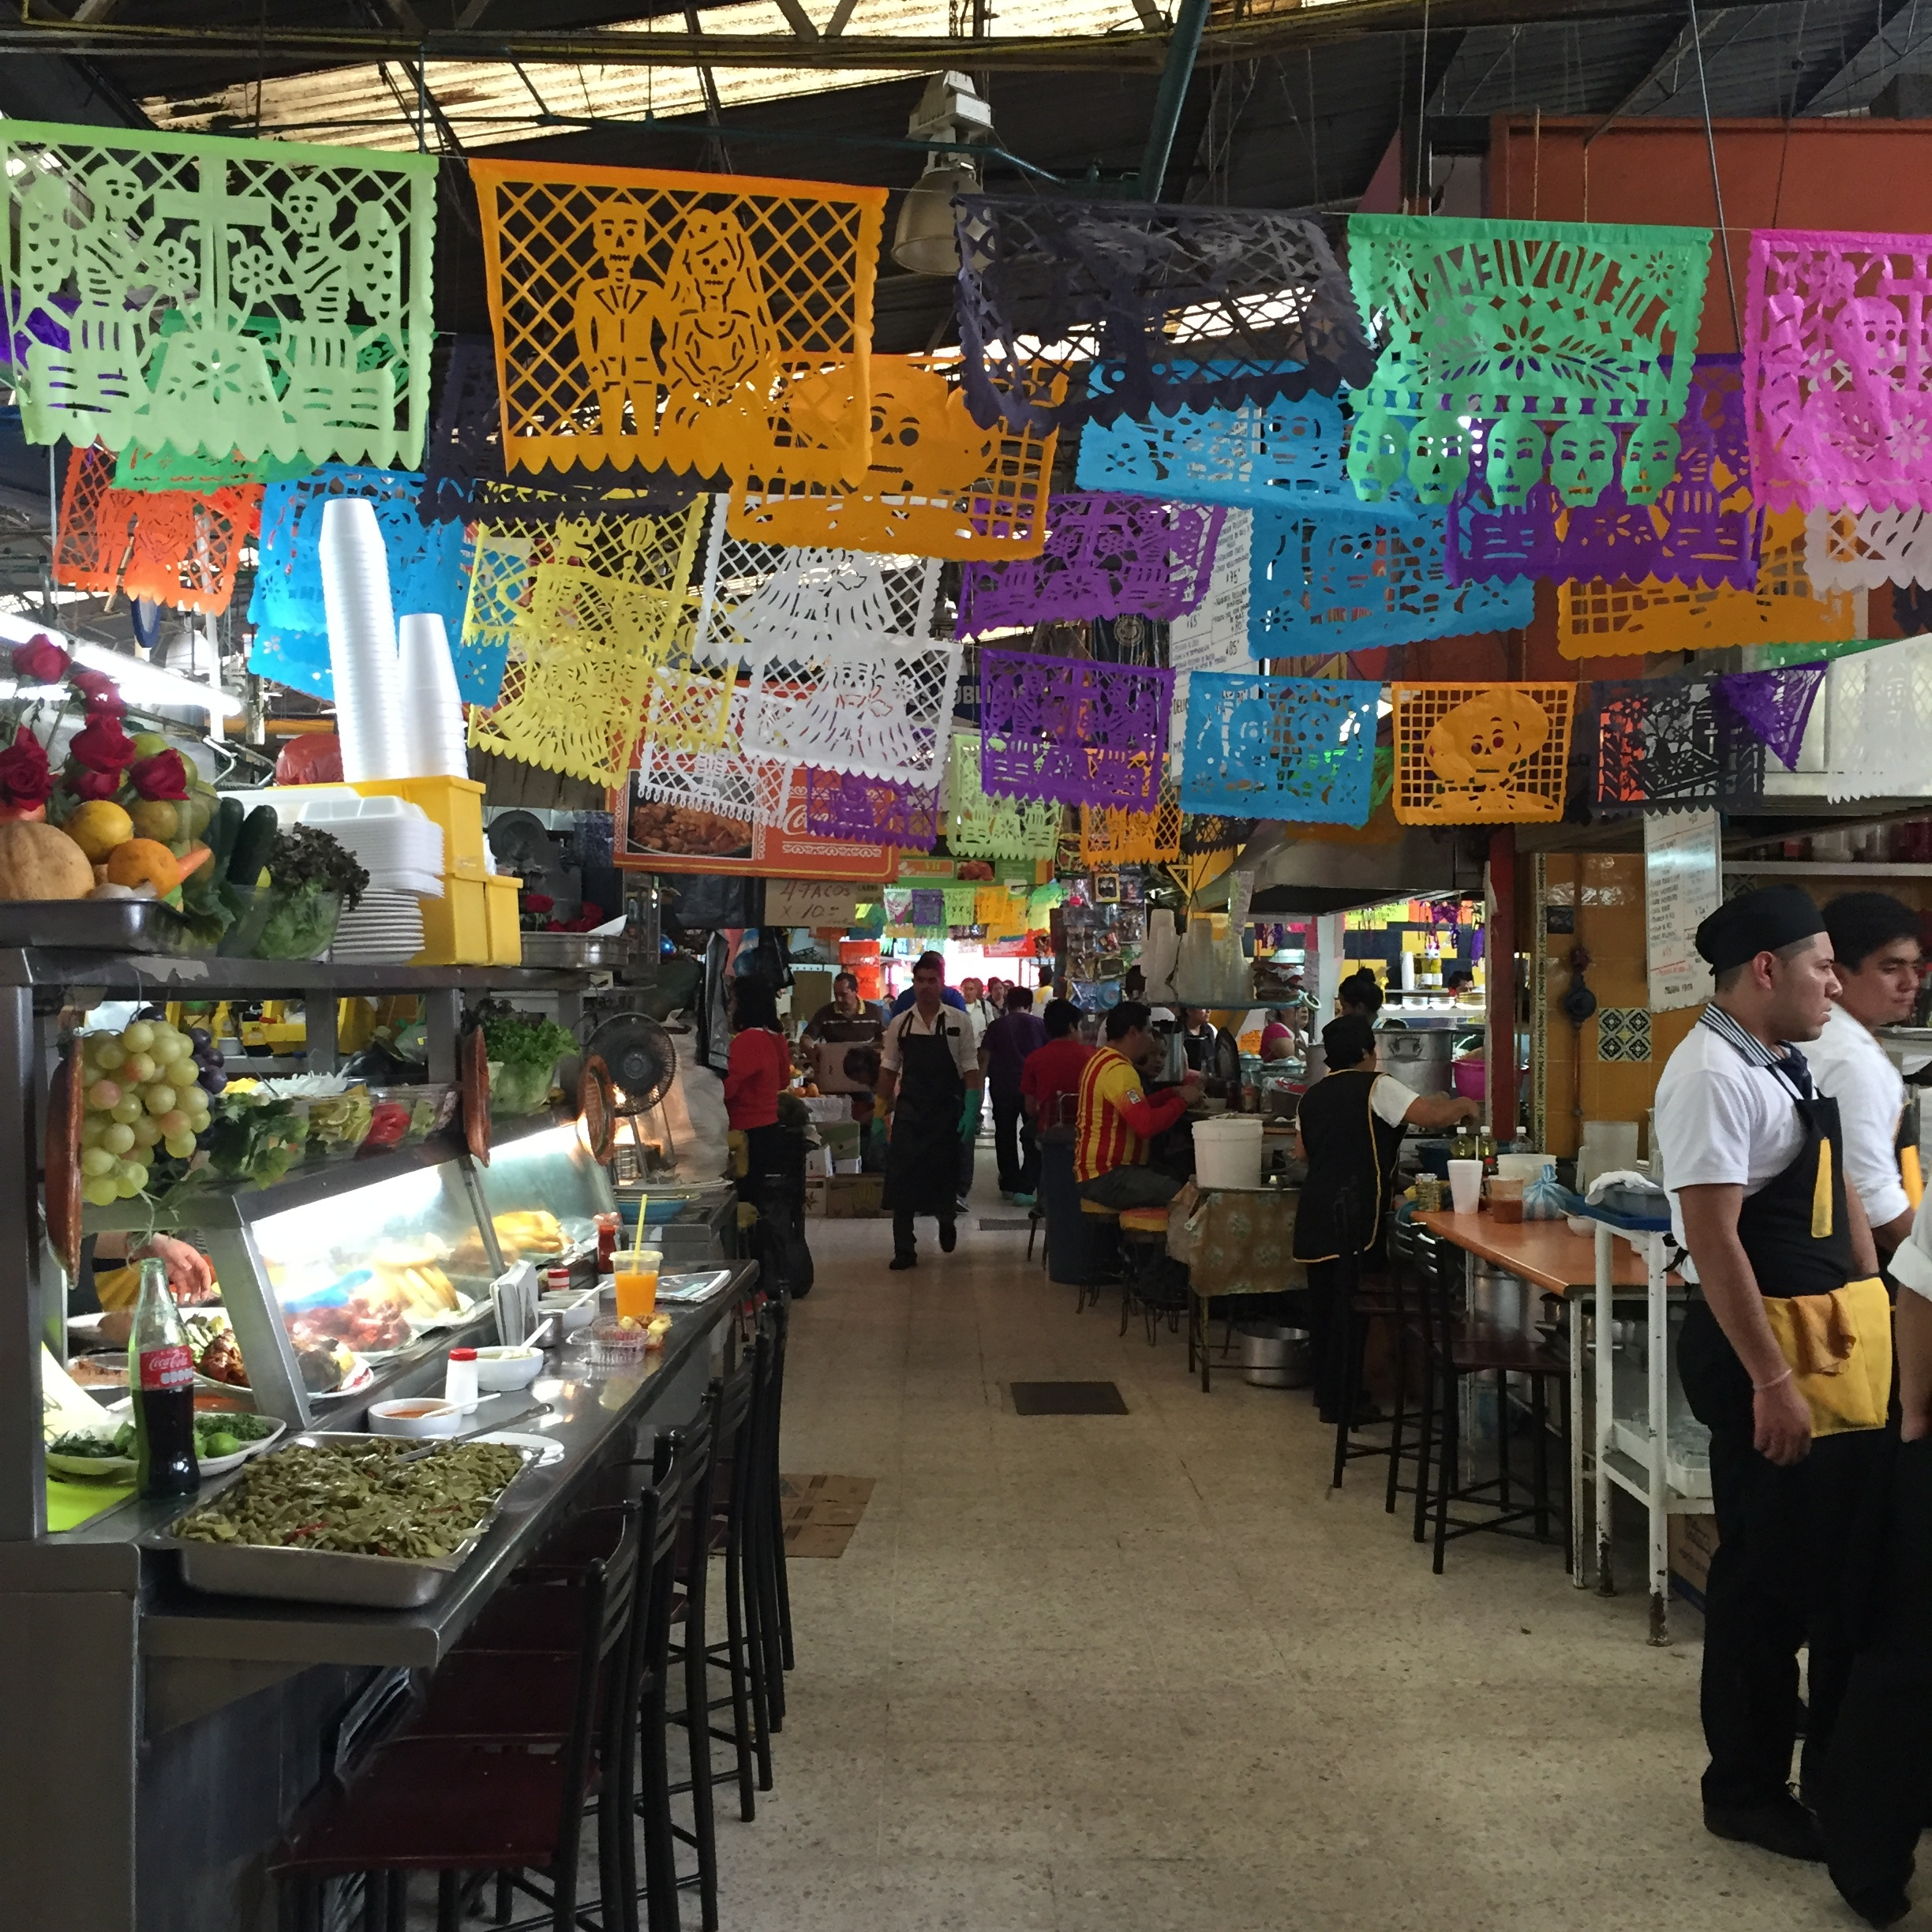 One of the food markets we walked through